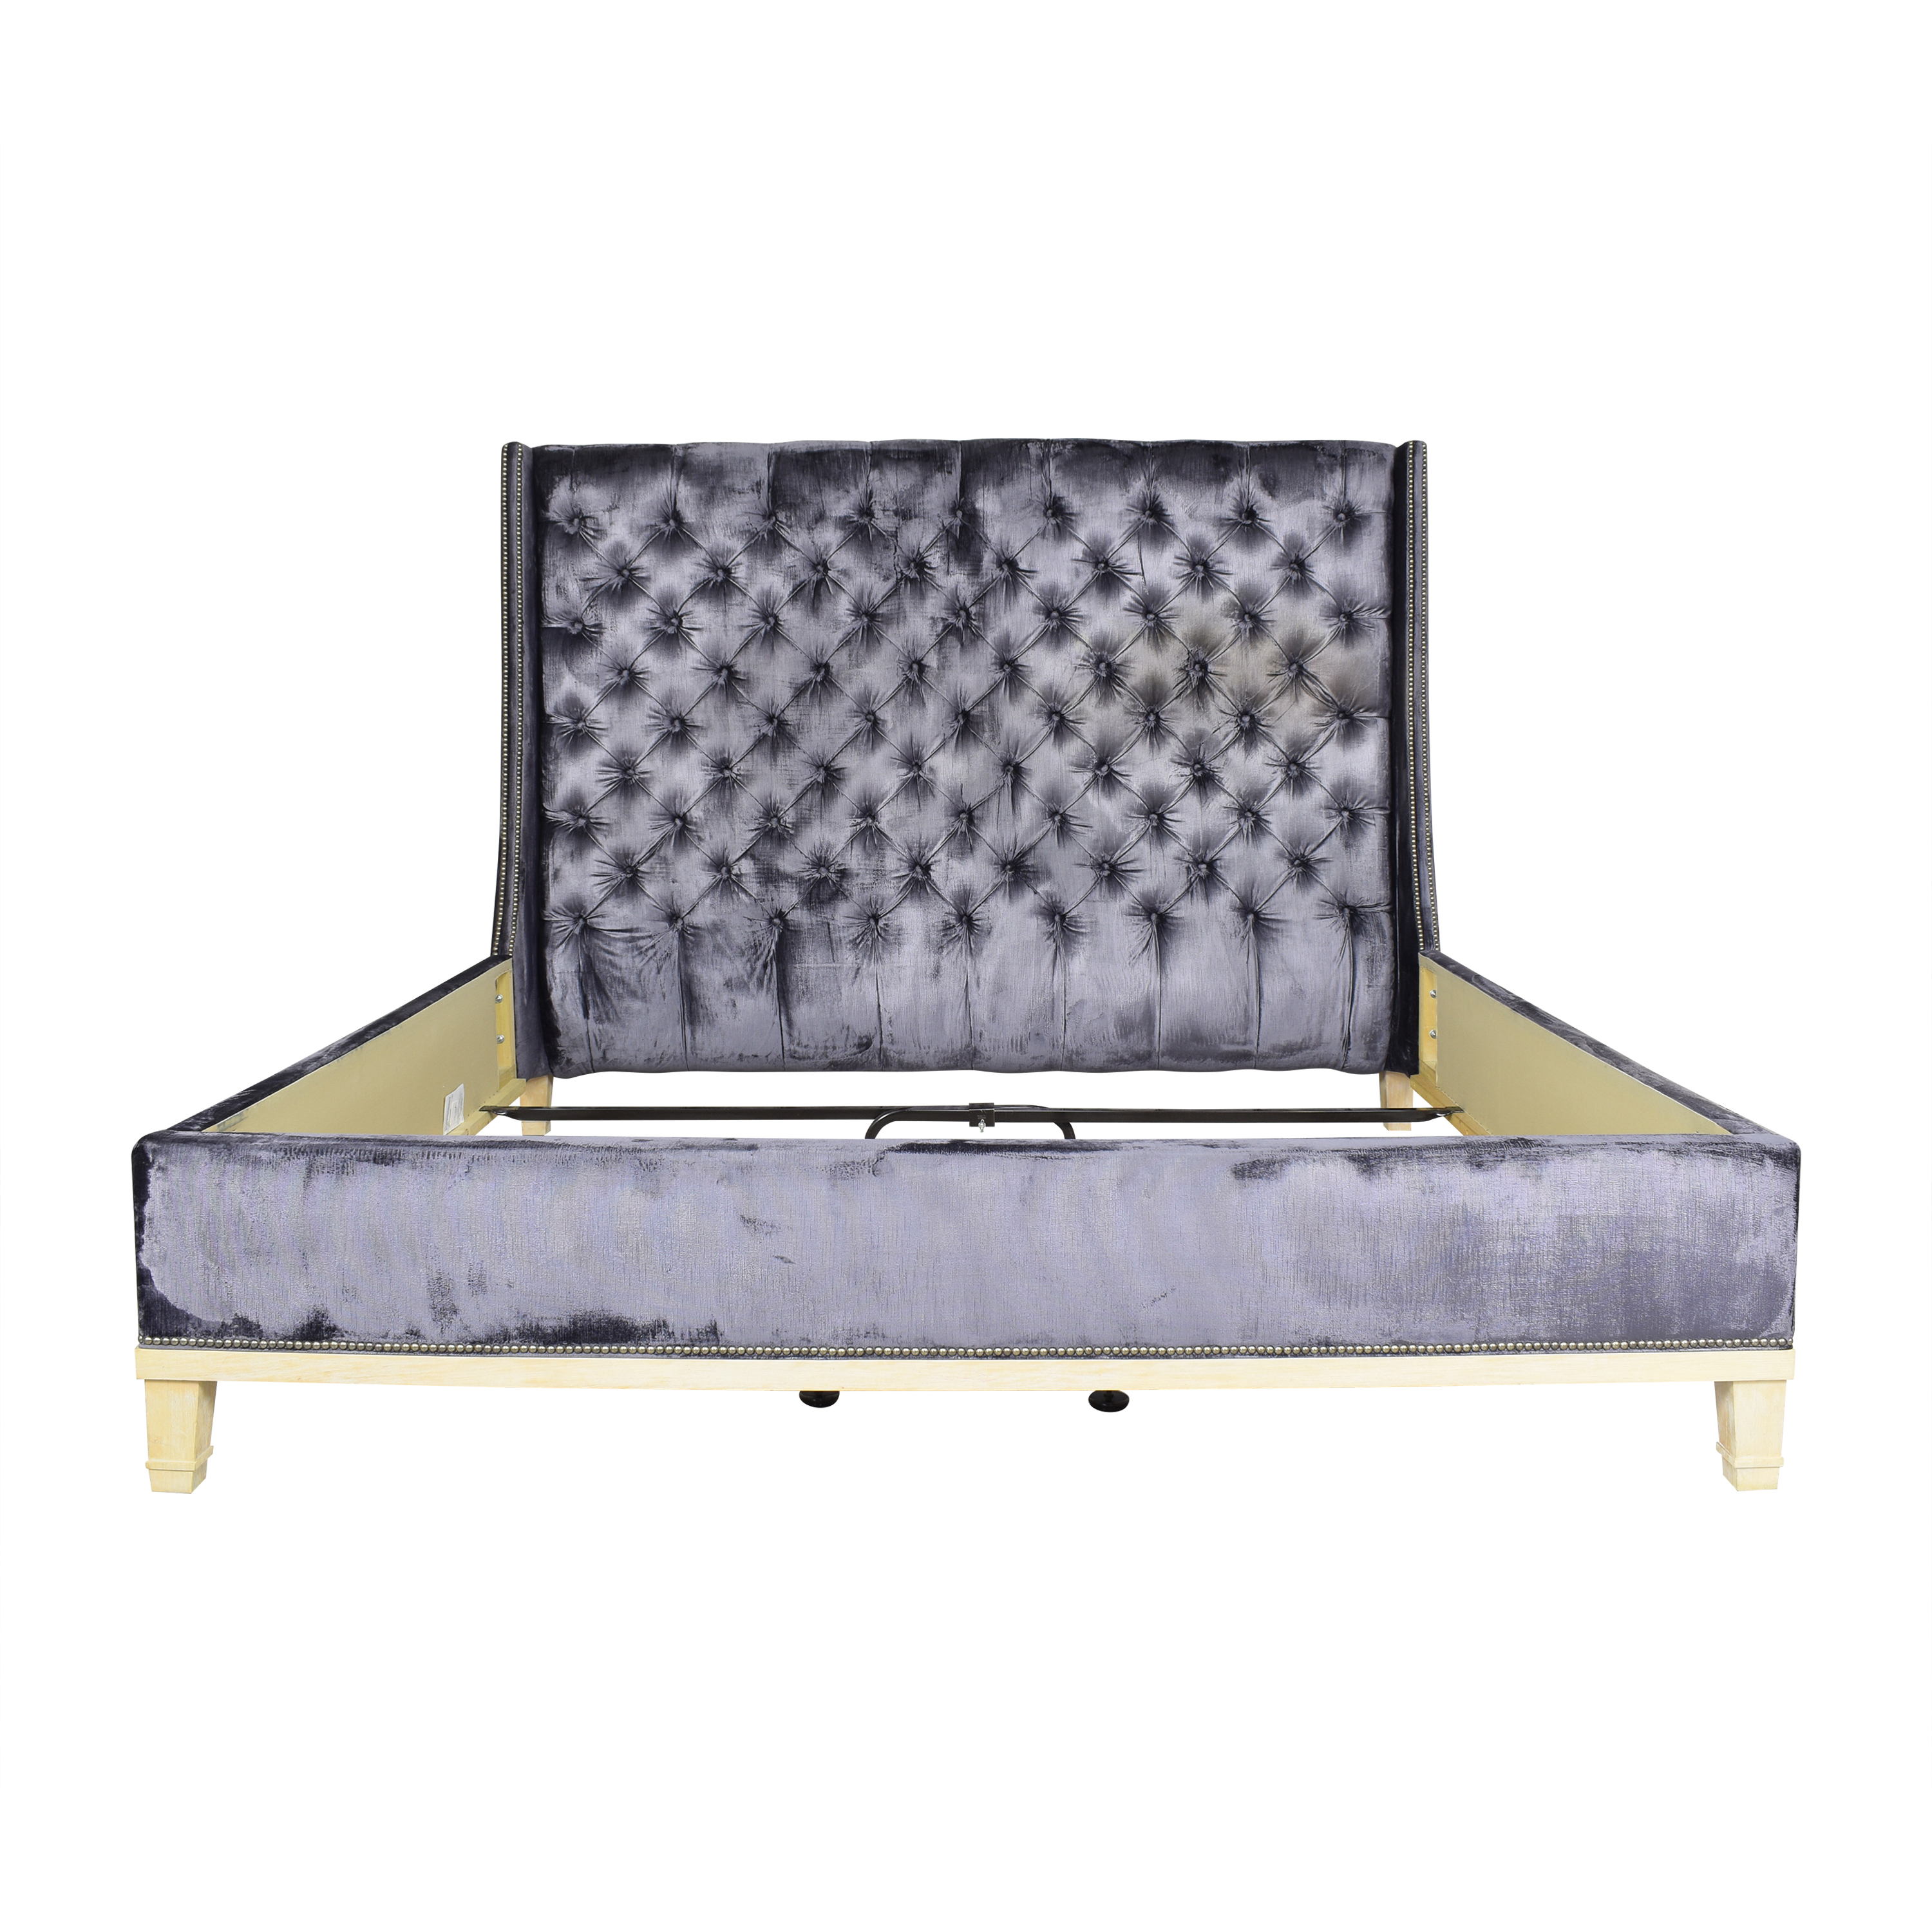 Vanguard Furniture Michael Weiss Cleo King Bed  / Bed Frames